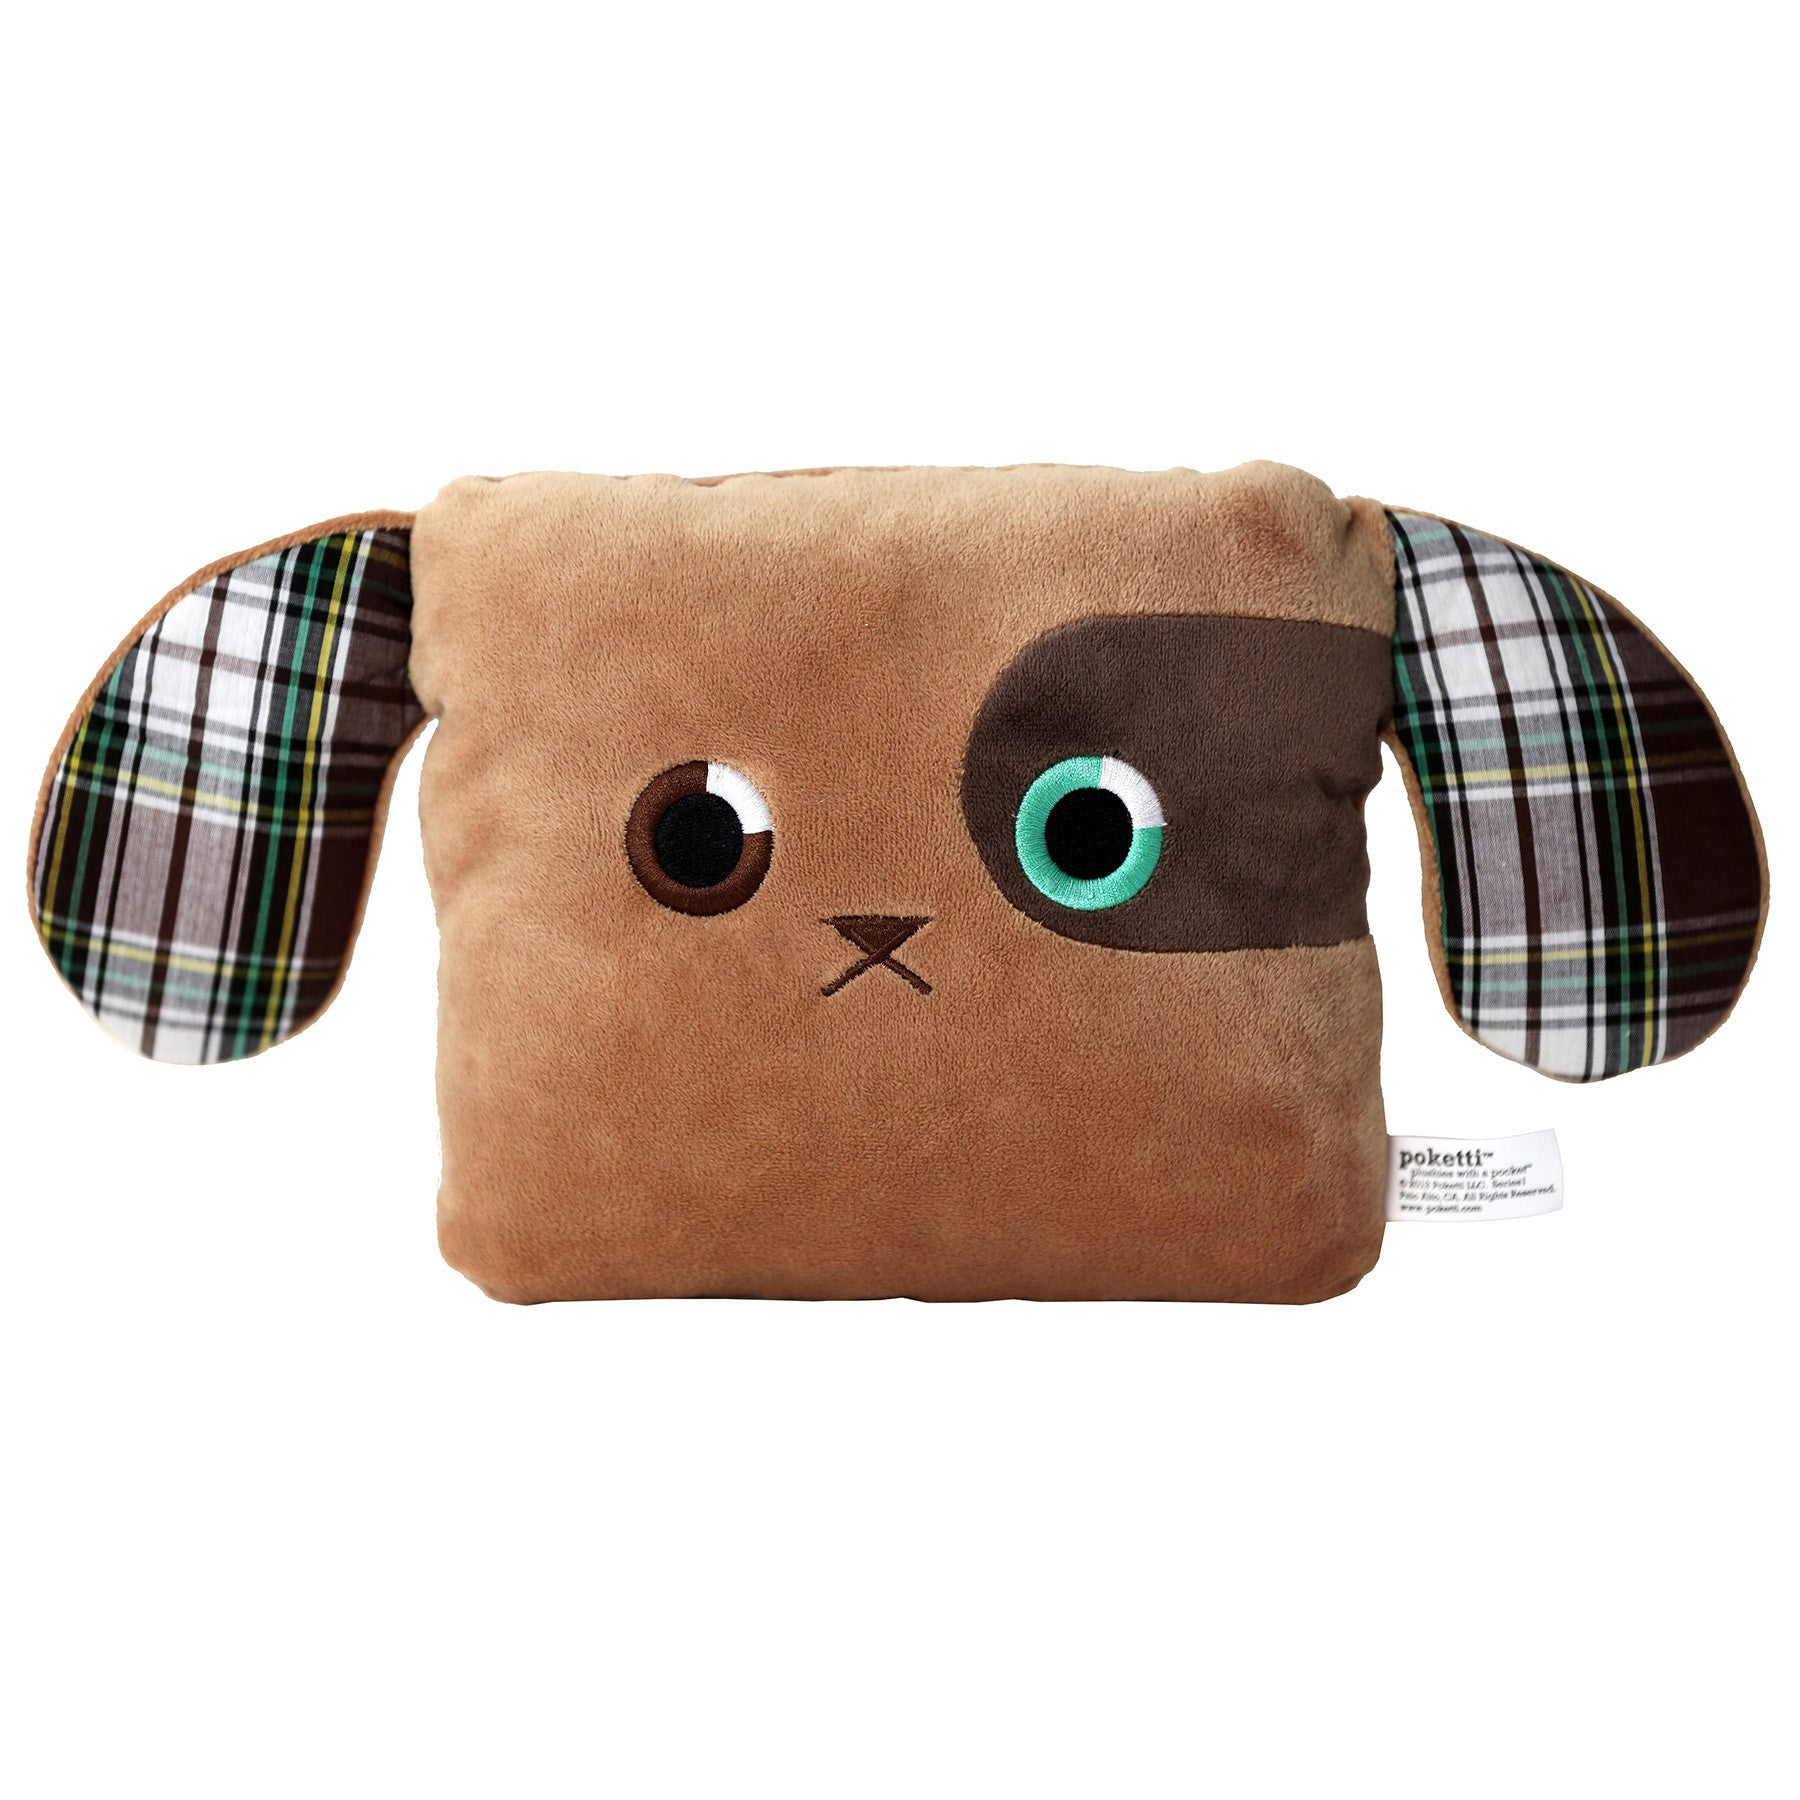 Poketti Puppy Dog Plush Pillow with a Pocket - Front